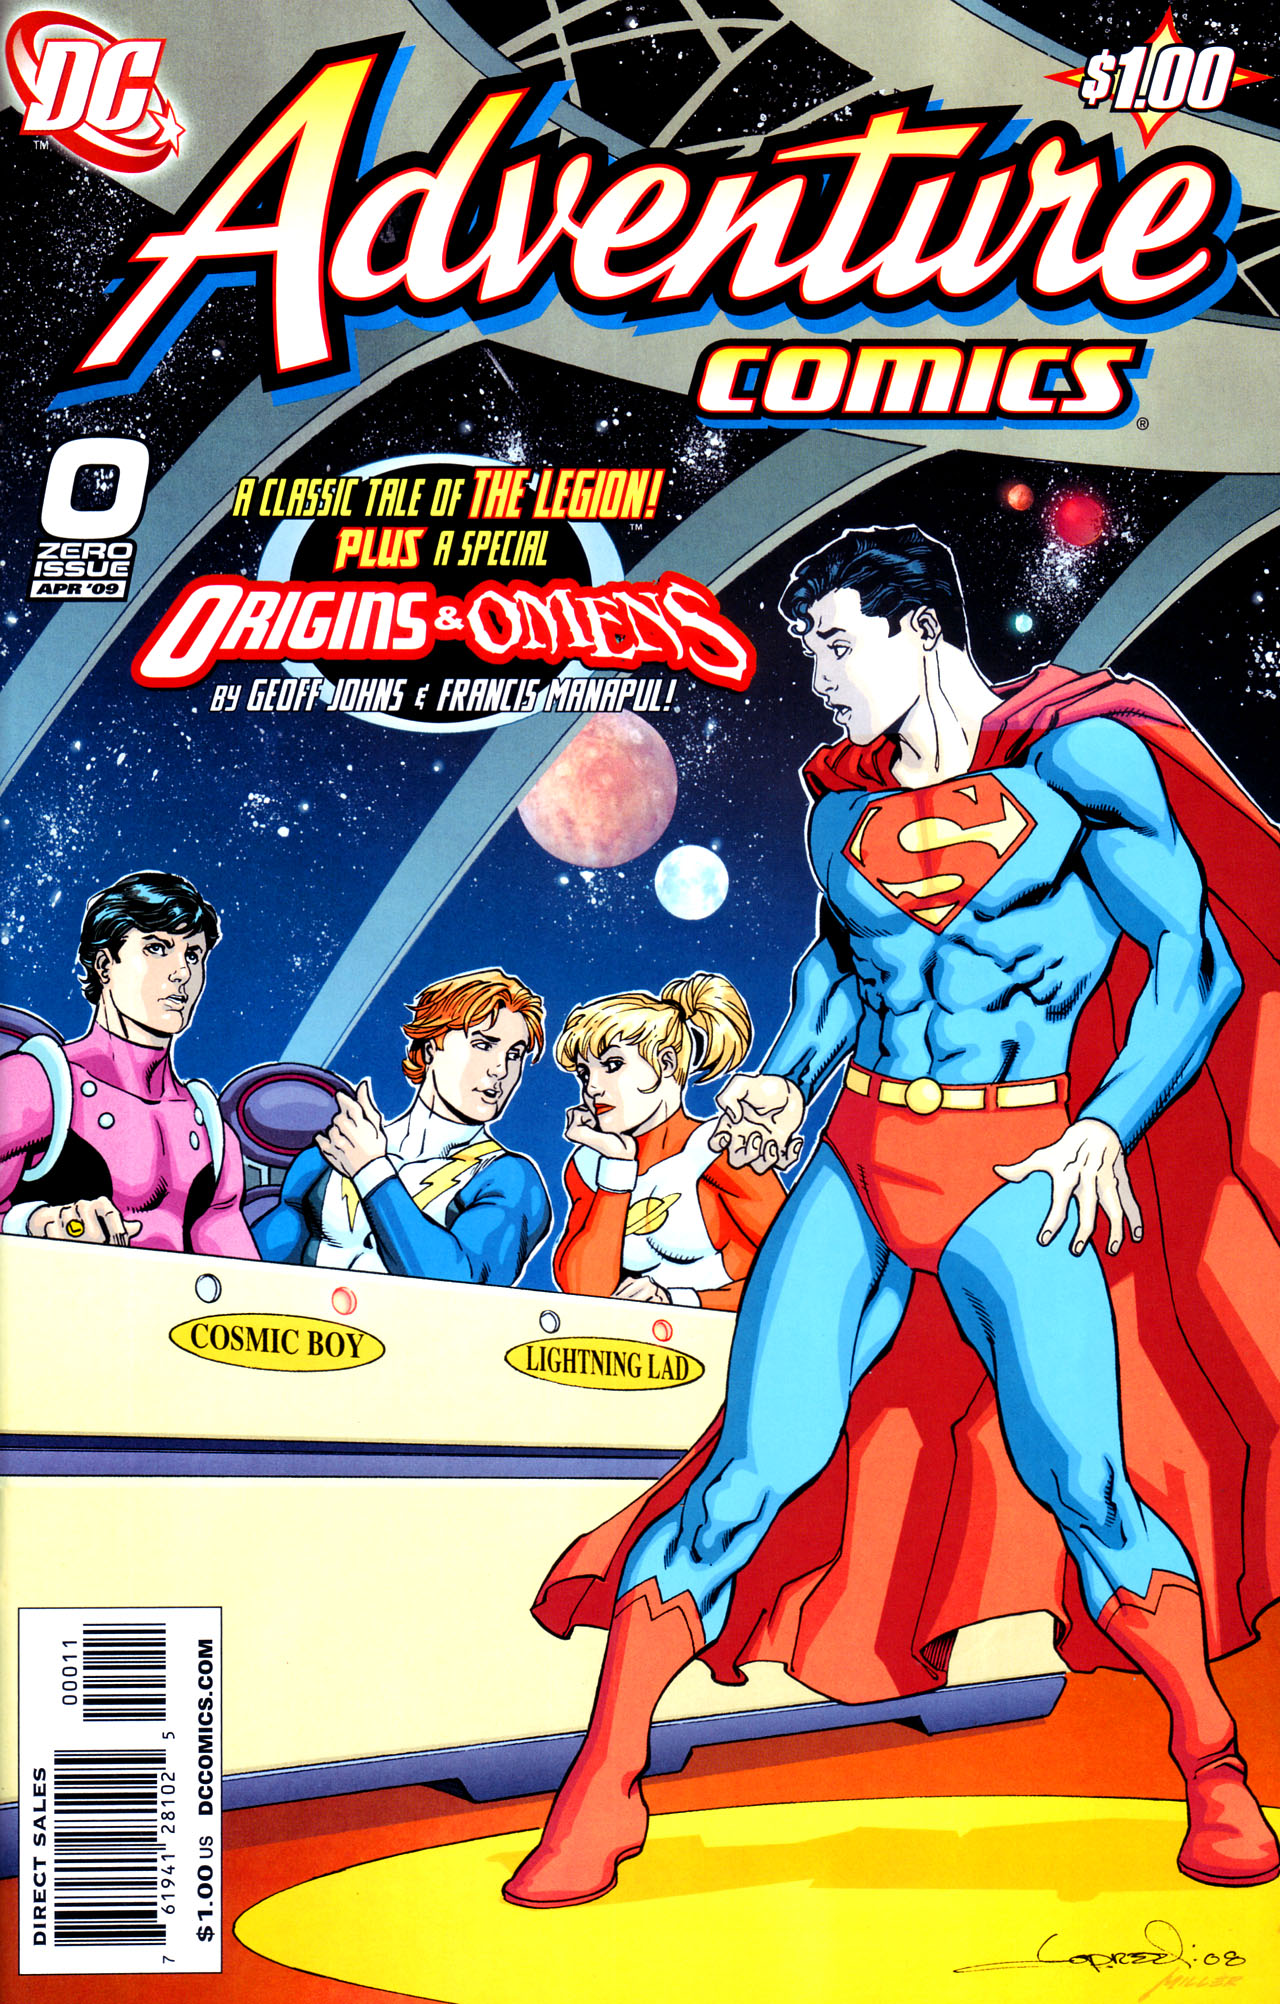 Read online Adventure Comics (2009) comic -  Issue #0 - 1